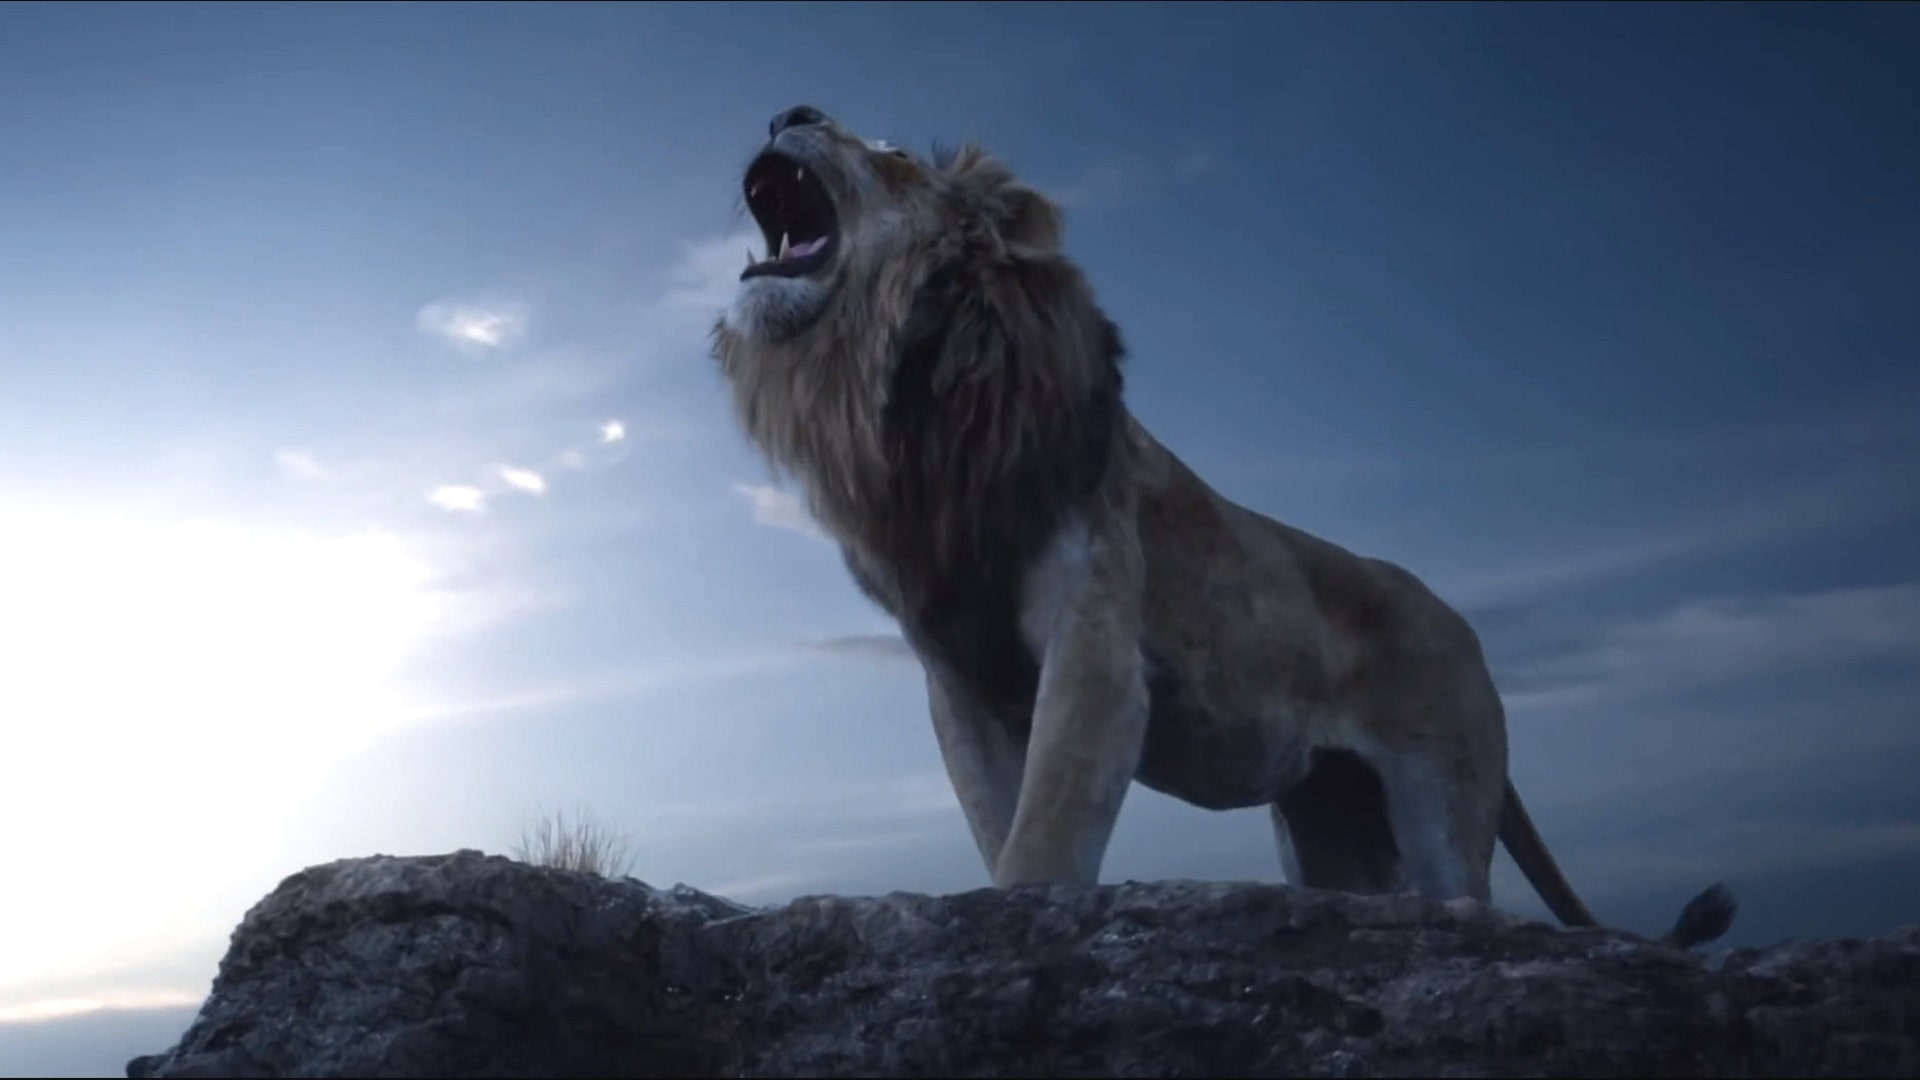 The Lion King Hd Wallpapers 7wallpapersnet